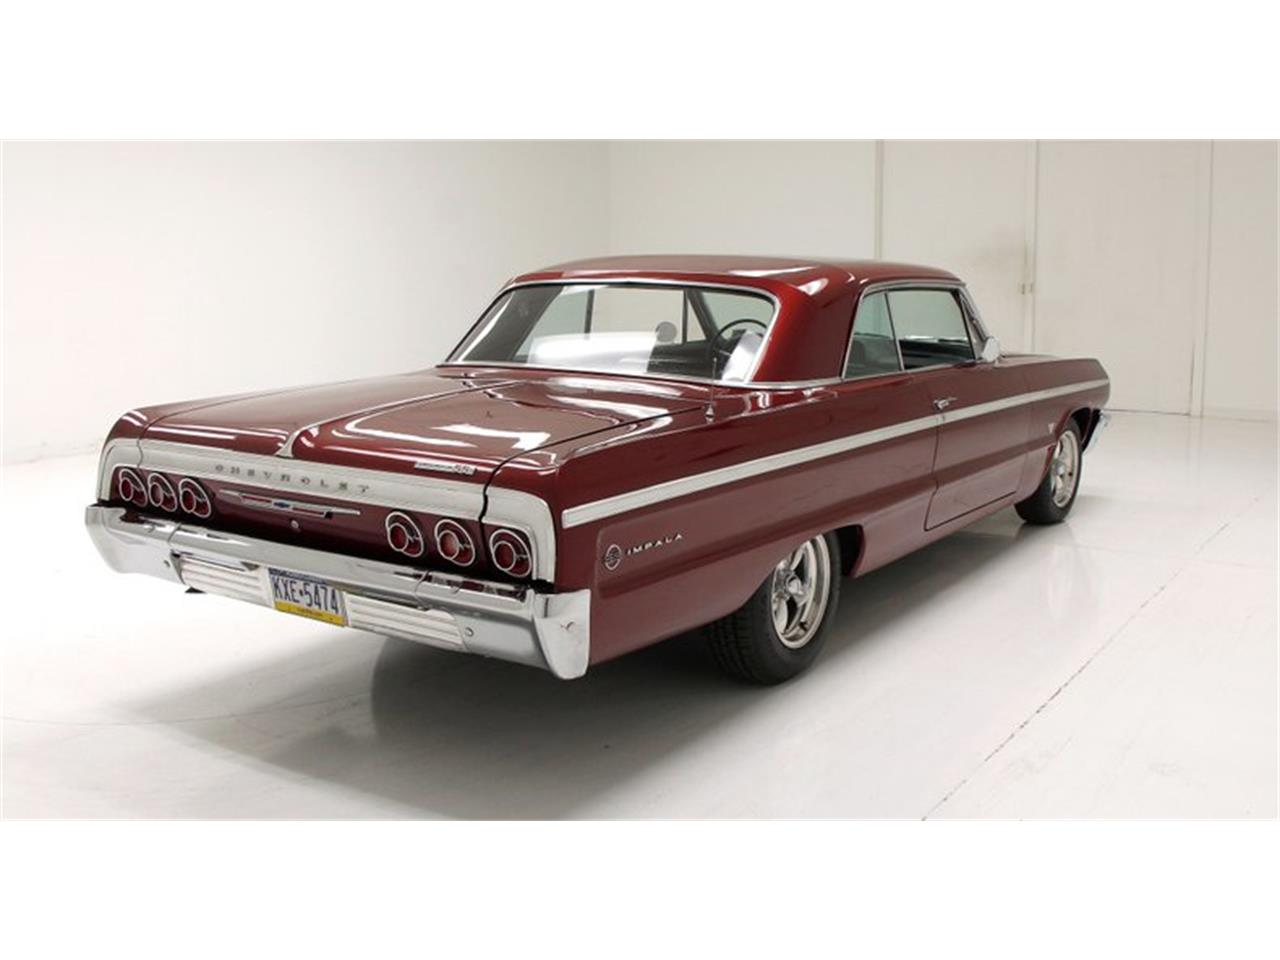 1964 Chevrolet Impala (CC-1302518) for sale in Morgantown, Pennsylvania